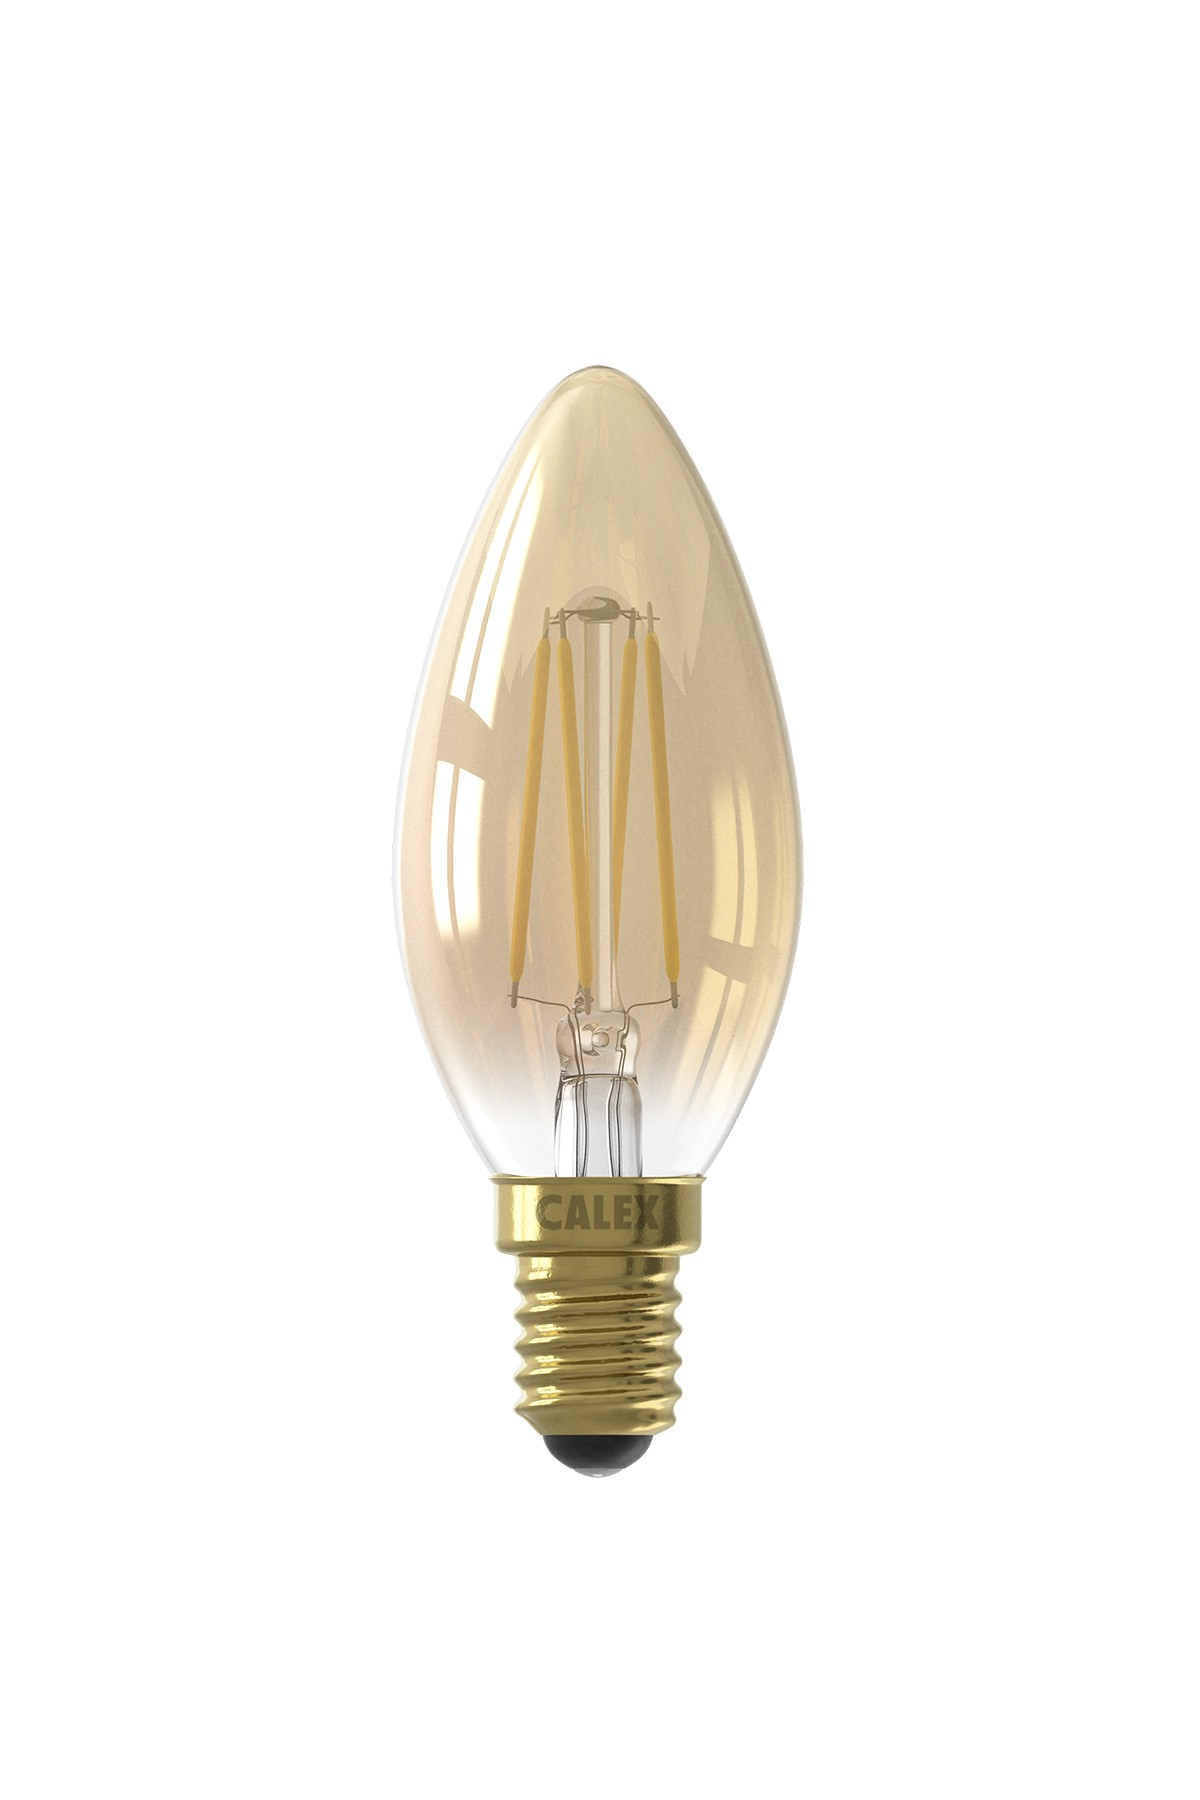 60 E14 Lumen Filament Led Dimmable Candle Lamp 240v 3 5w E14 Calex